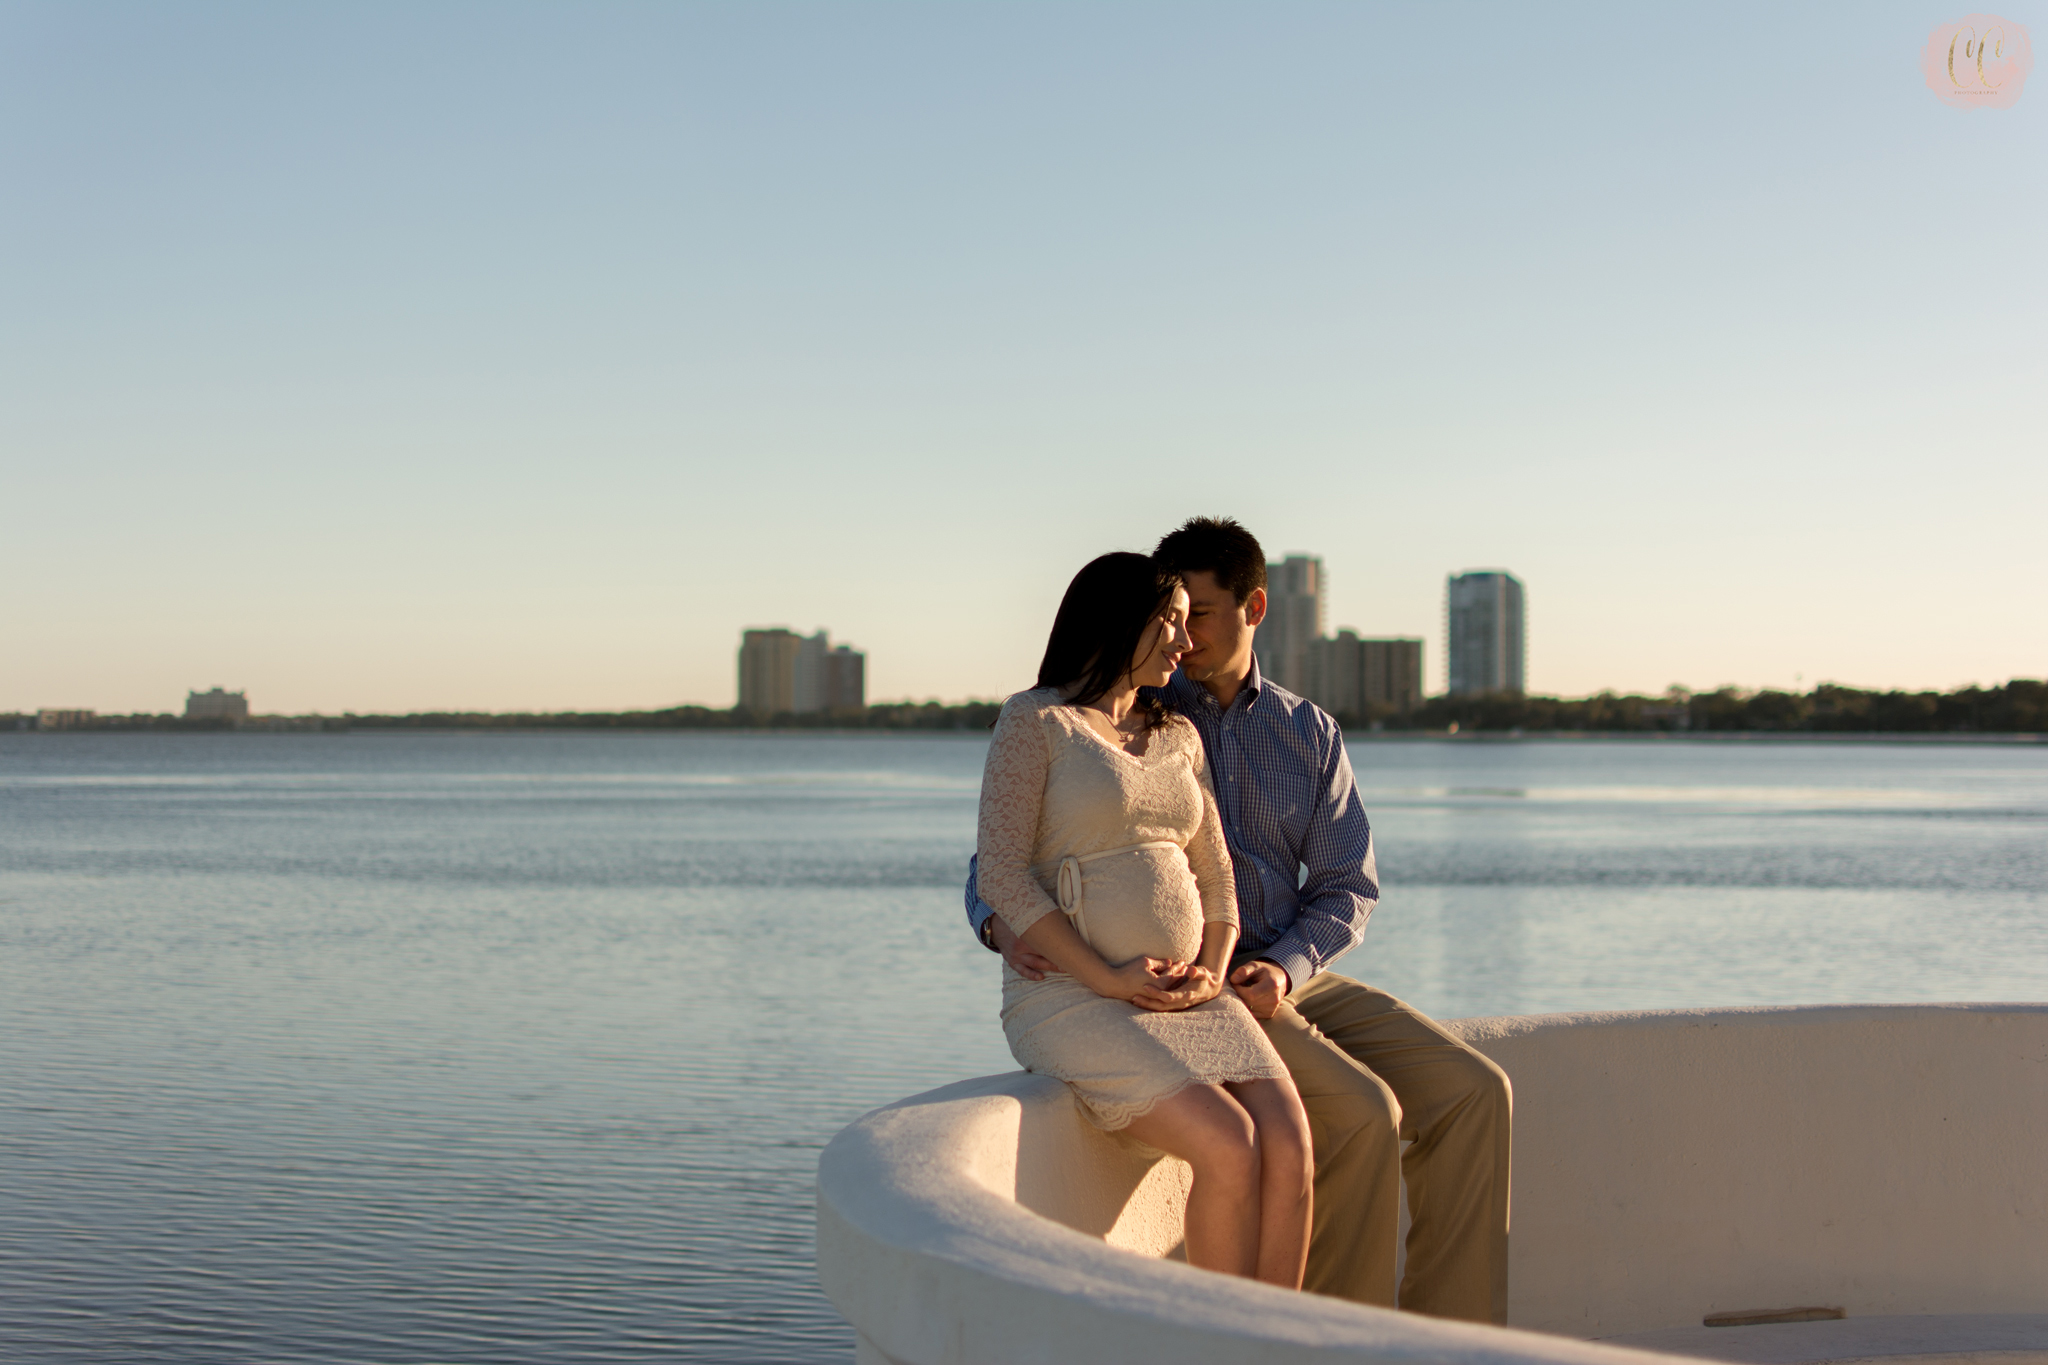 Maternity photos on Bayshore Boulvard in Tampa Florida taken by family photographer Carlie Chew Photography